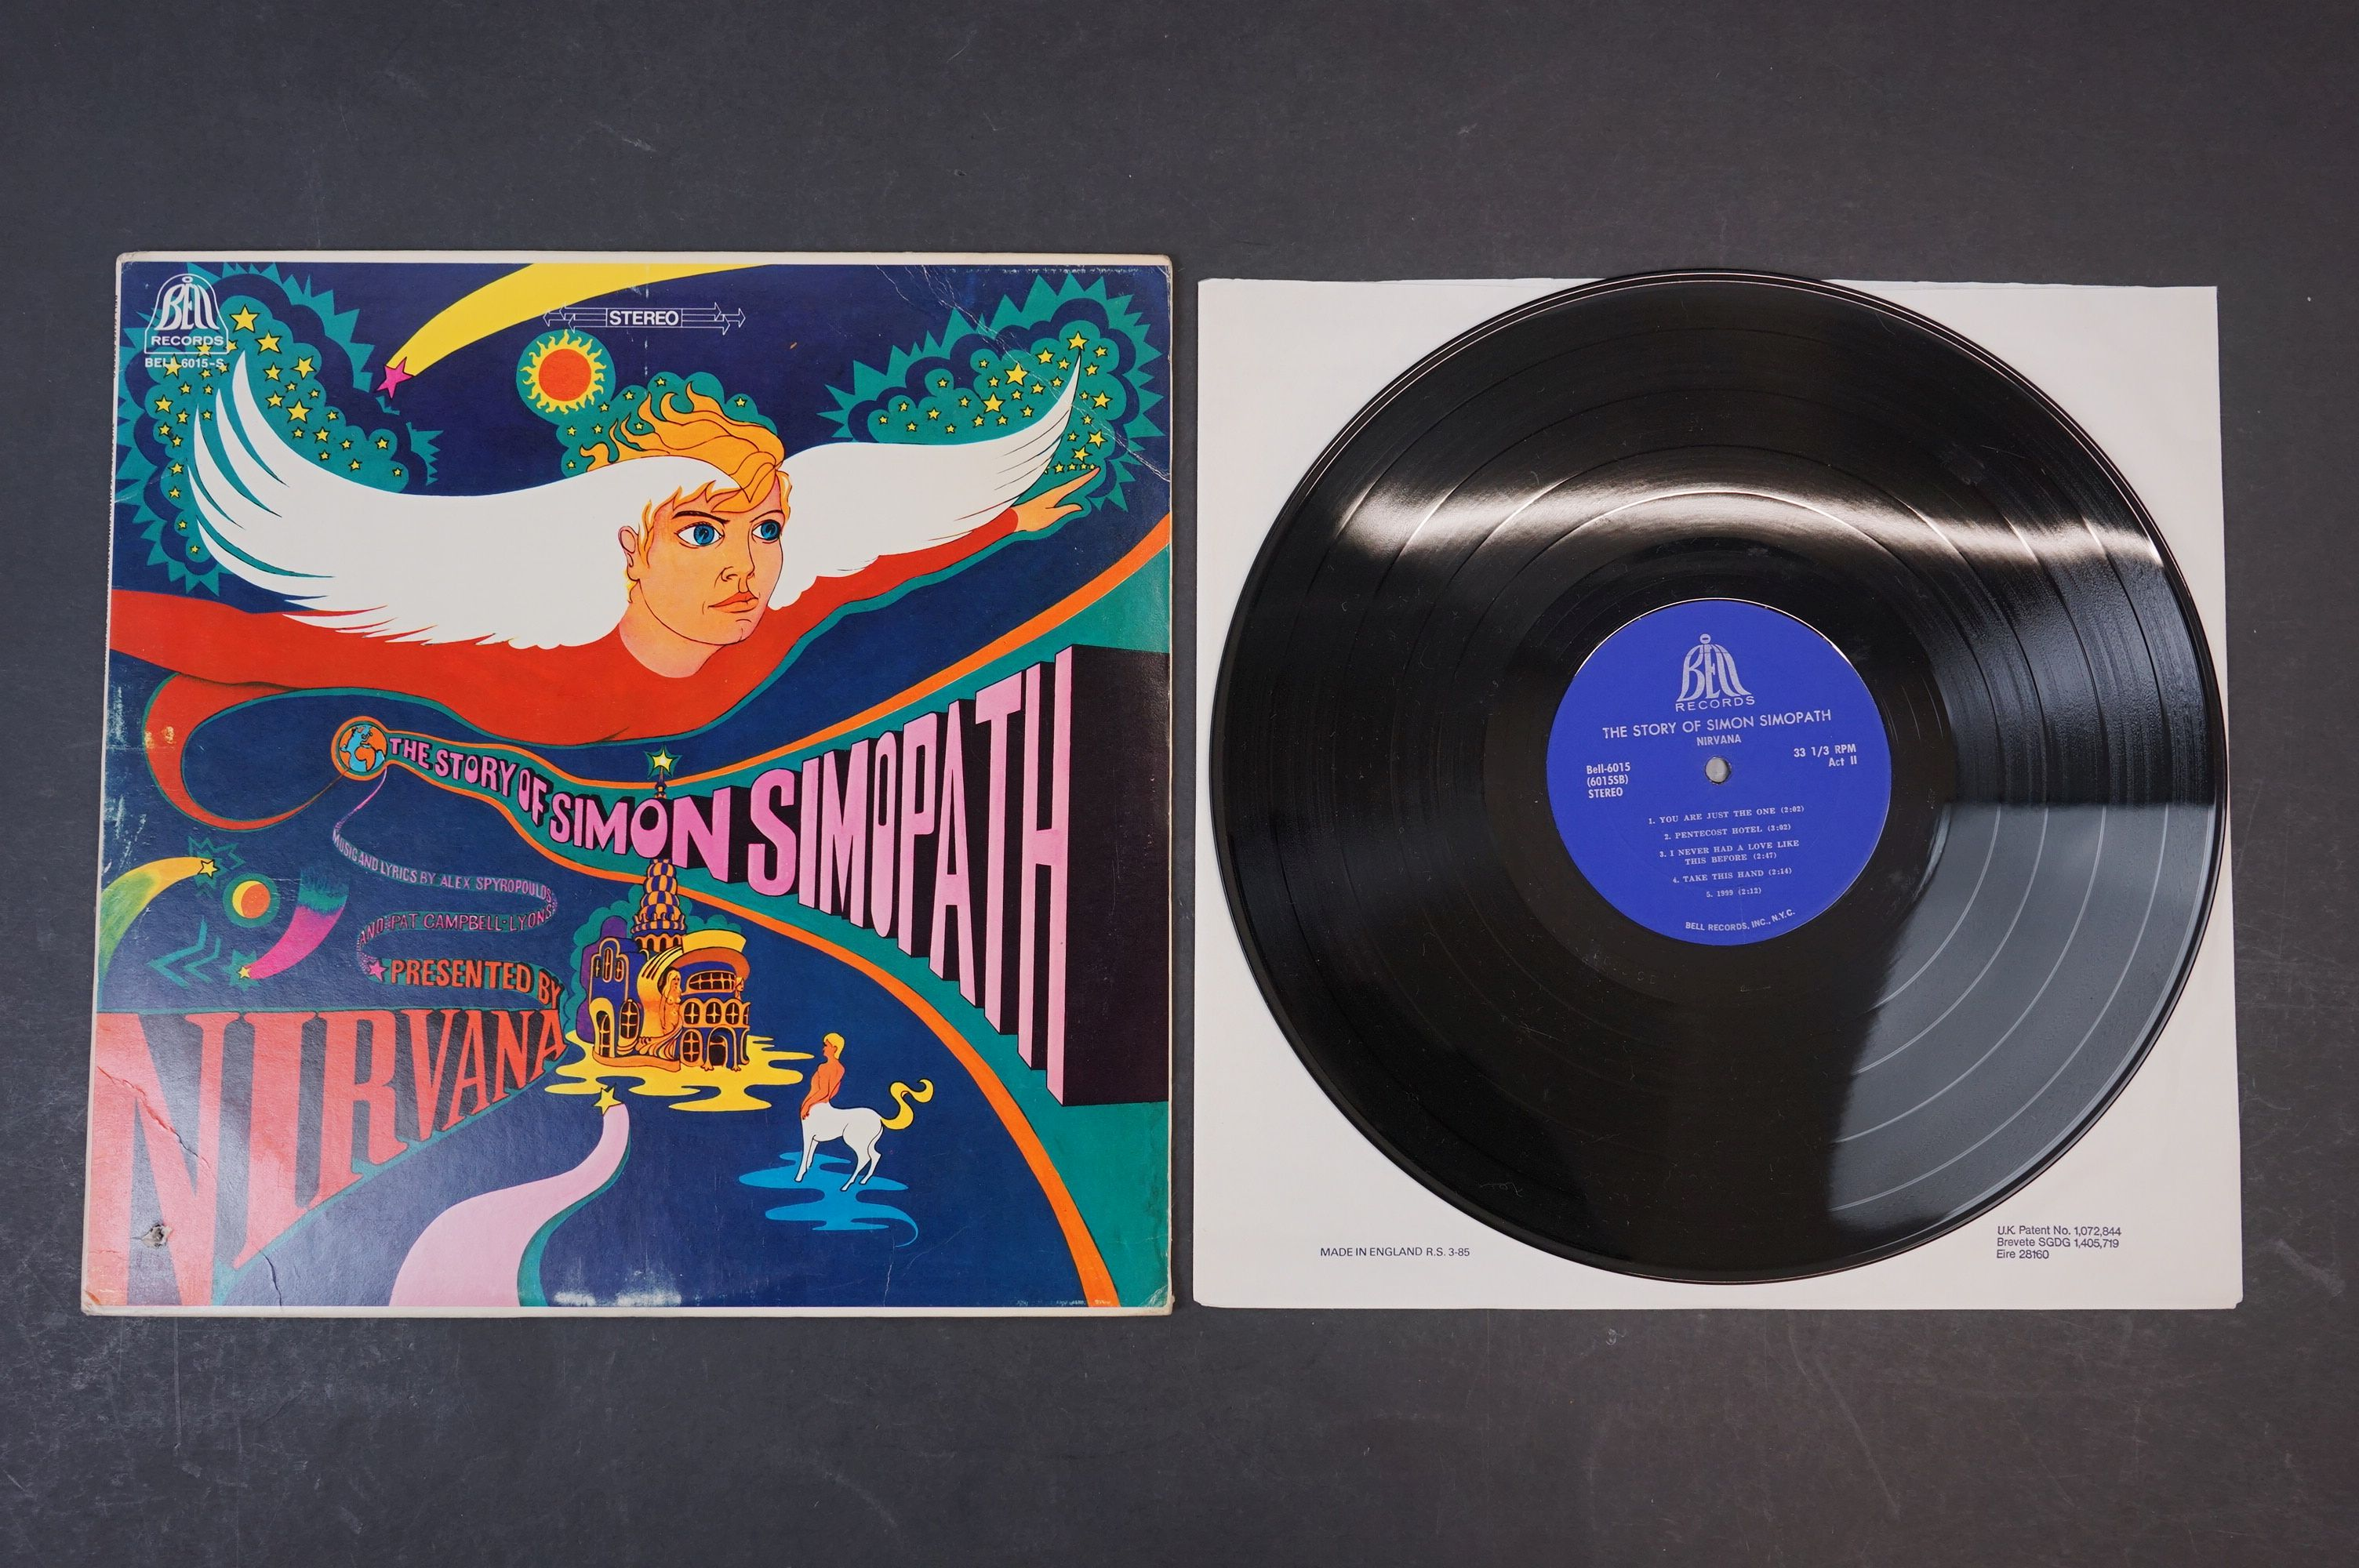 Vinyl - Two Nirvana LPs to include The Story of Simon Simopath LP on Bell Records 6015-S Stereo, - Image 2 of 13